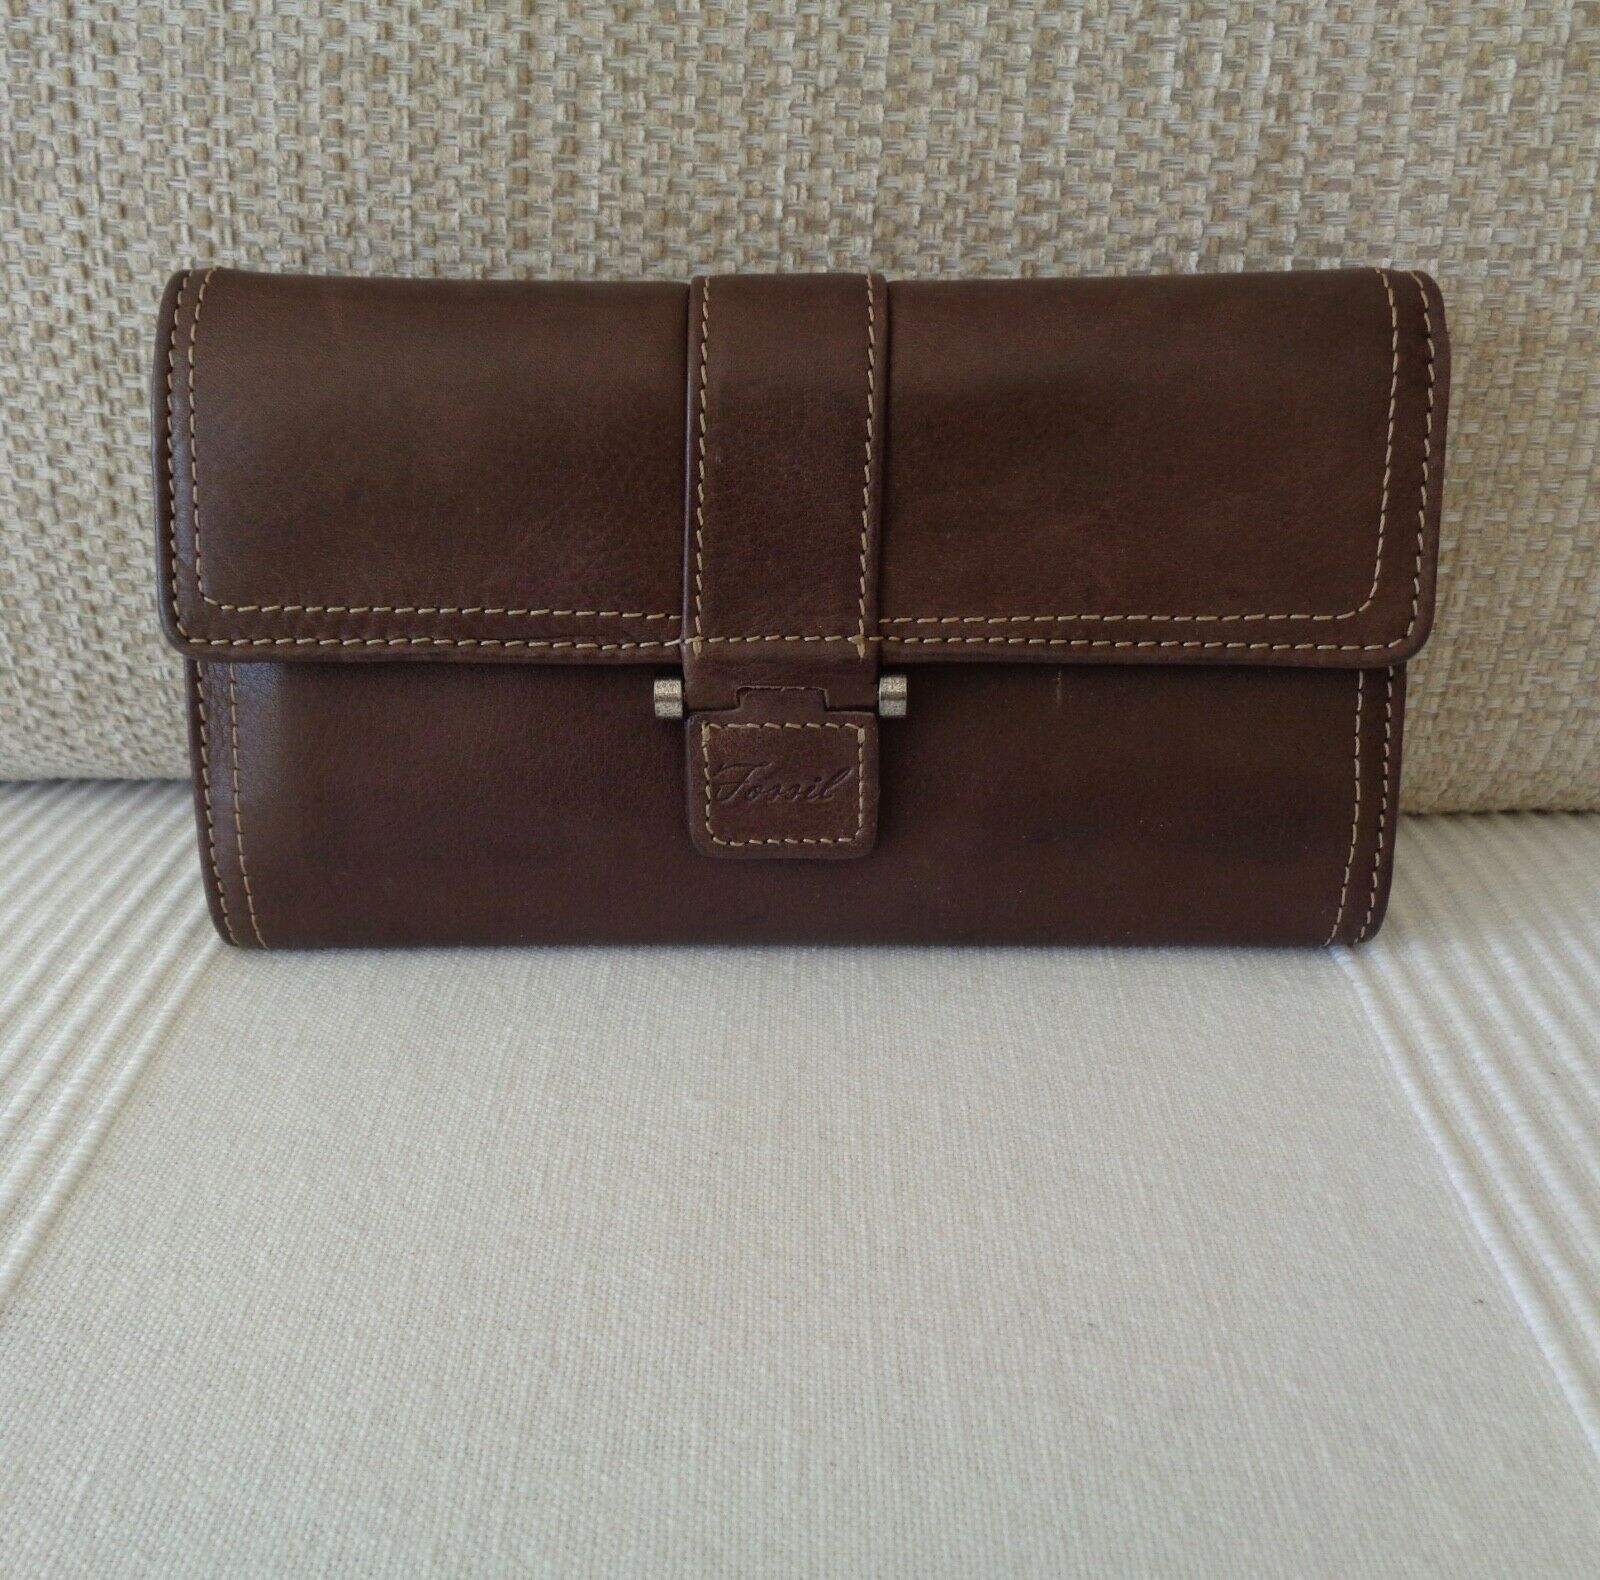 Fossil Vintage Look Brown Leather Trifold Wallet Purse With Extra Wallet 7